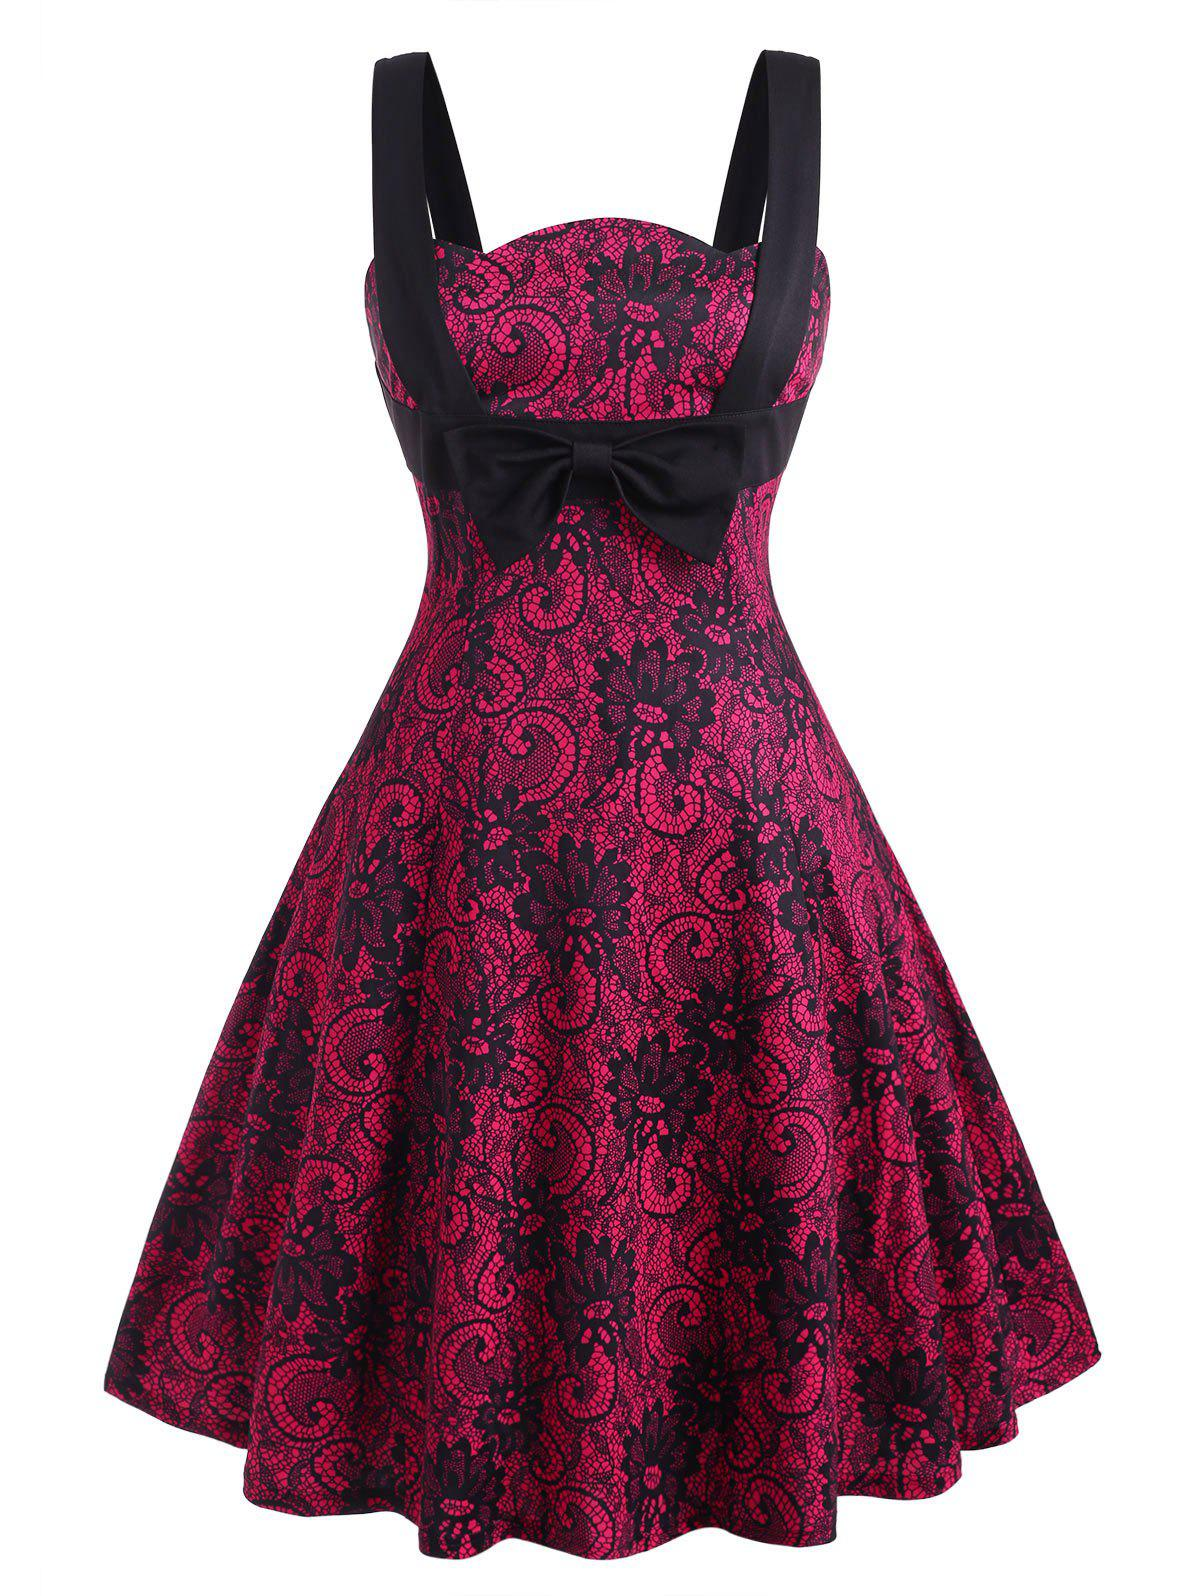 Printed Bowknot Straps Plus Size Vintage Dress - RED 4X